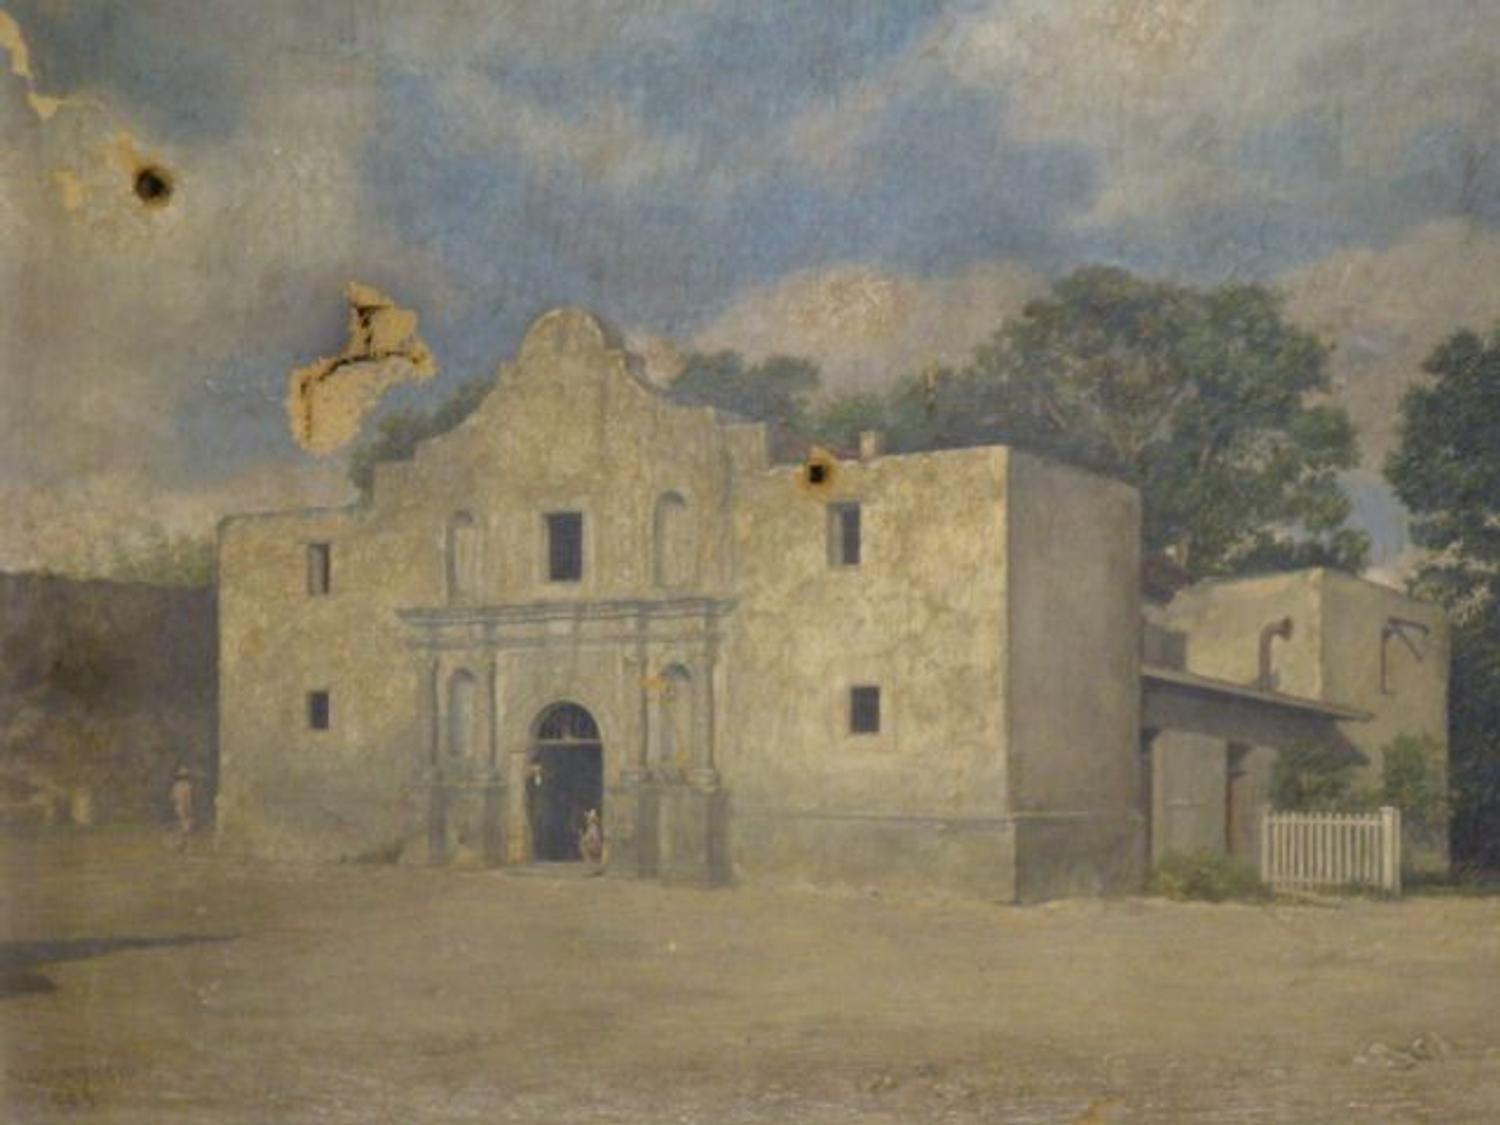 Early Alamo Painting Ascends Above 35k Artfixdaily News Watermelon Wallpaper Rainbow Find Free HD for Desktop [freshlhys.tk]